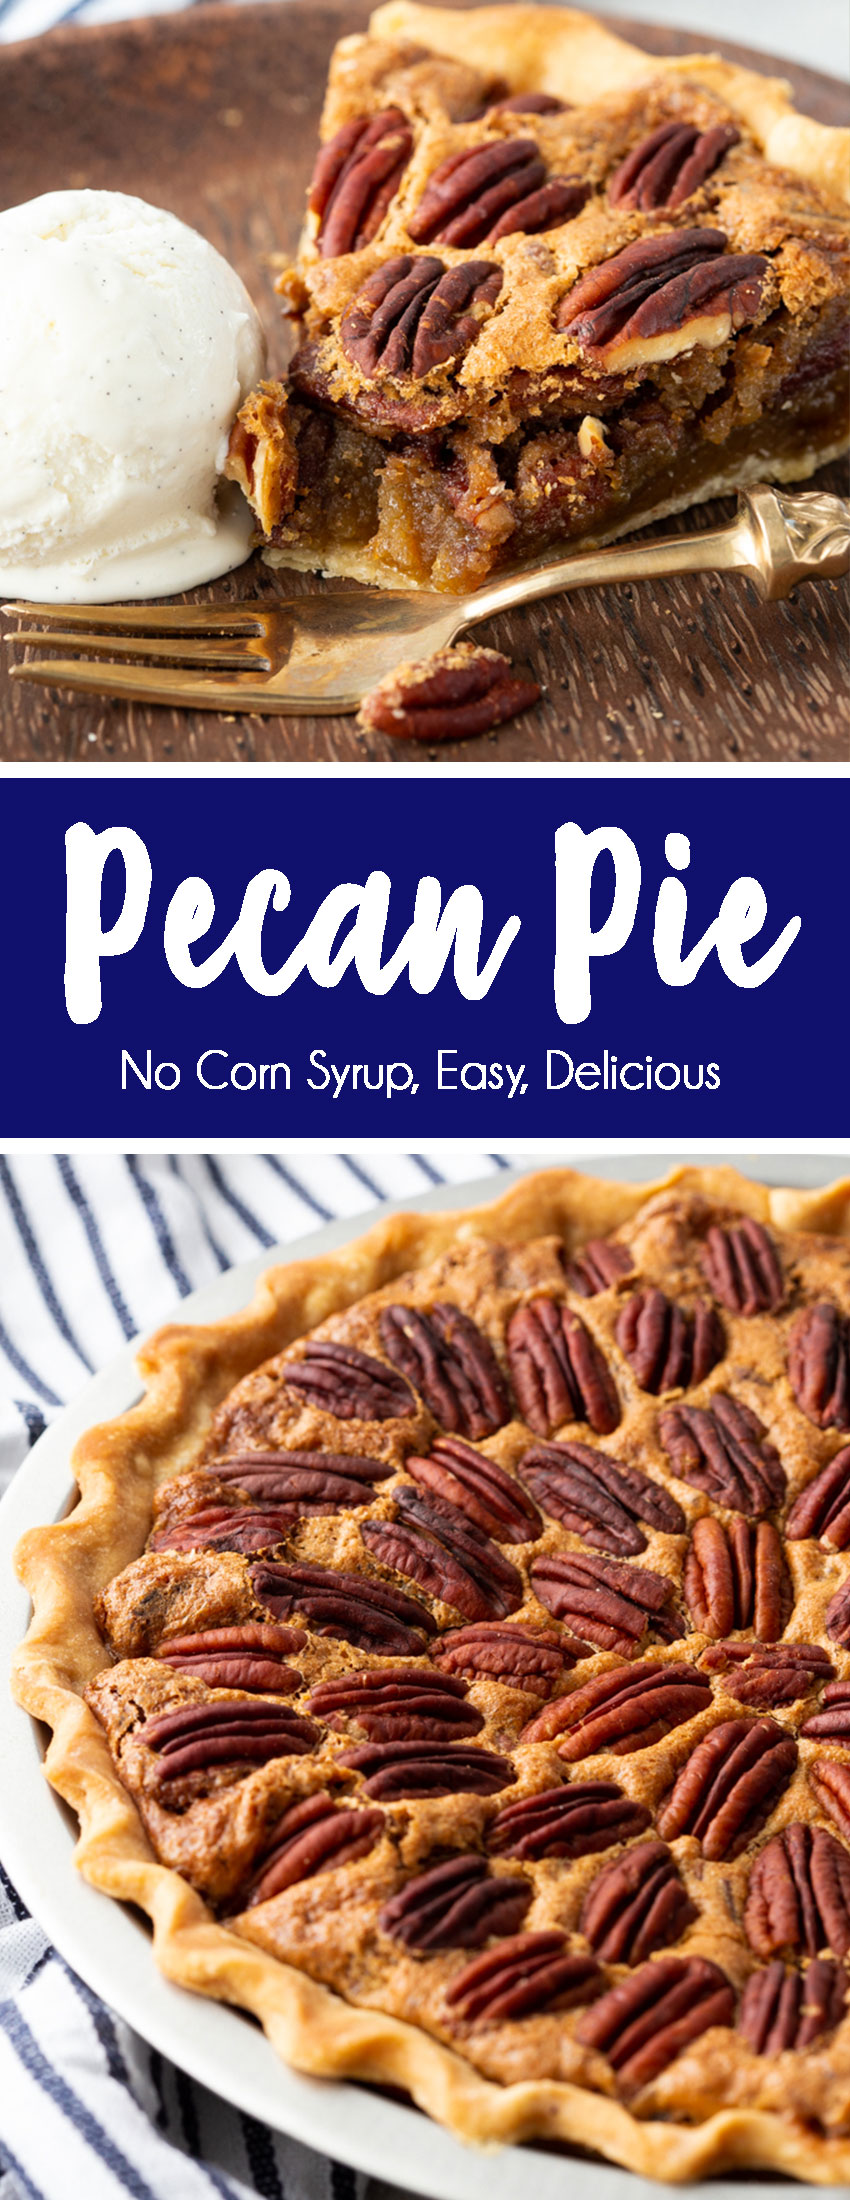 the BEST EVER pecan pie with no corn syrup, and a rich, buttery, sugary filling, and toasted pecans